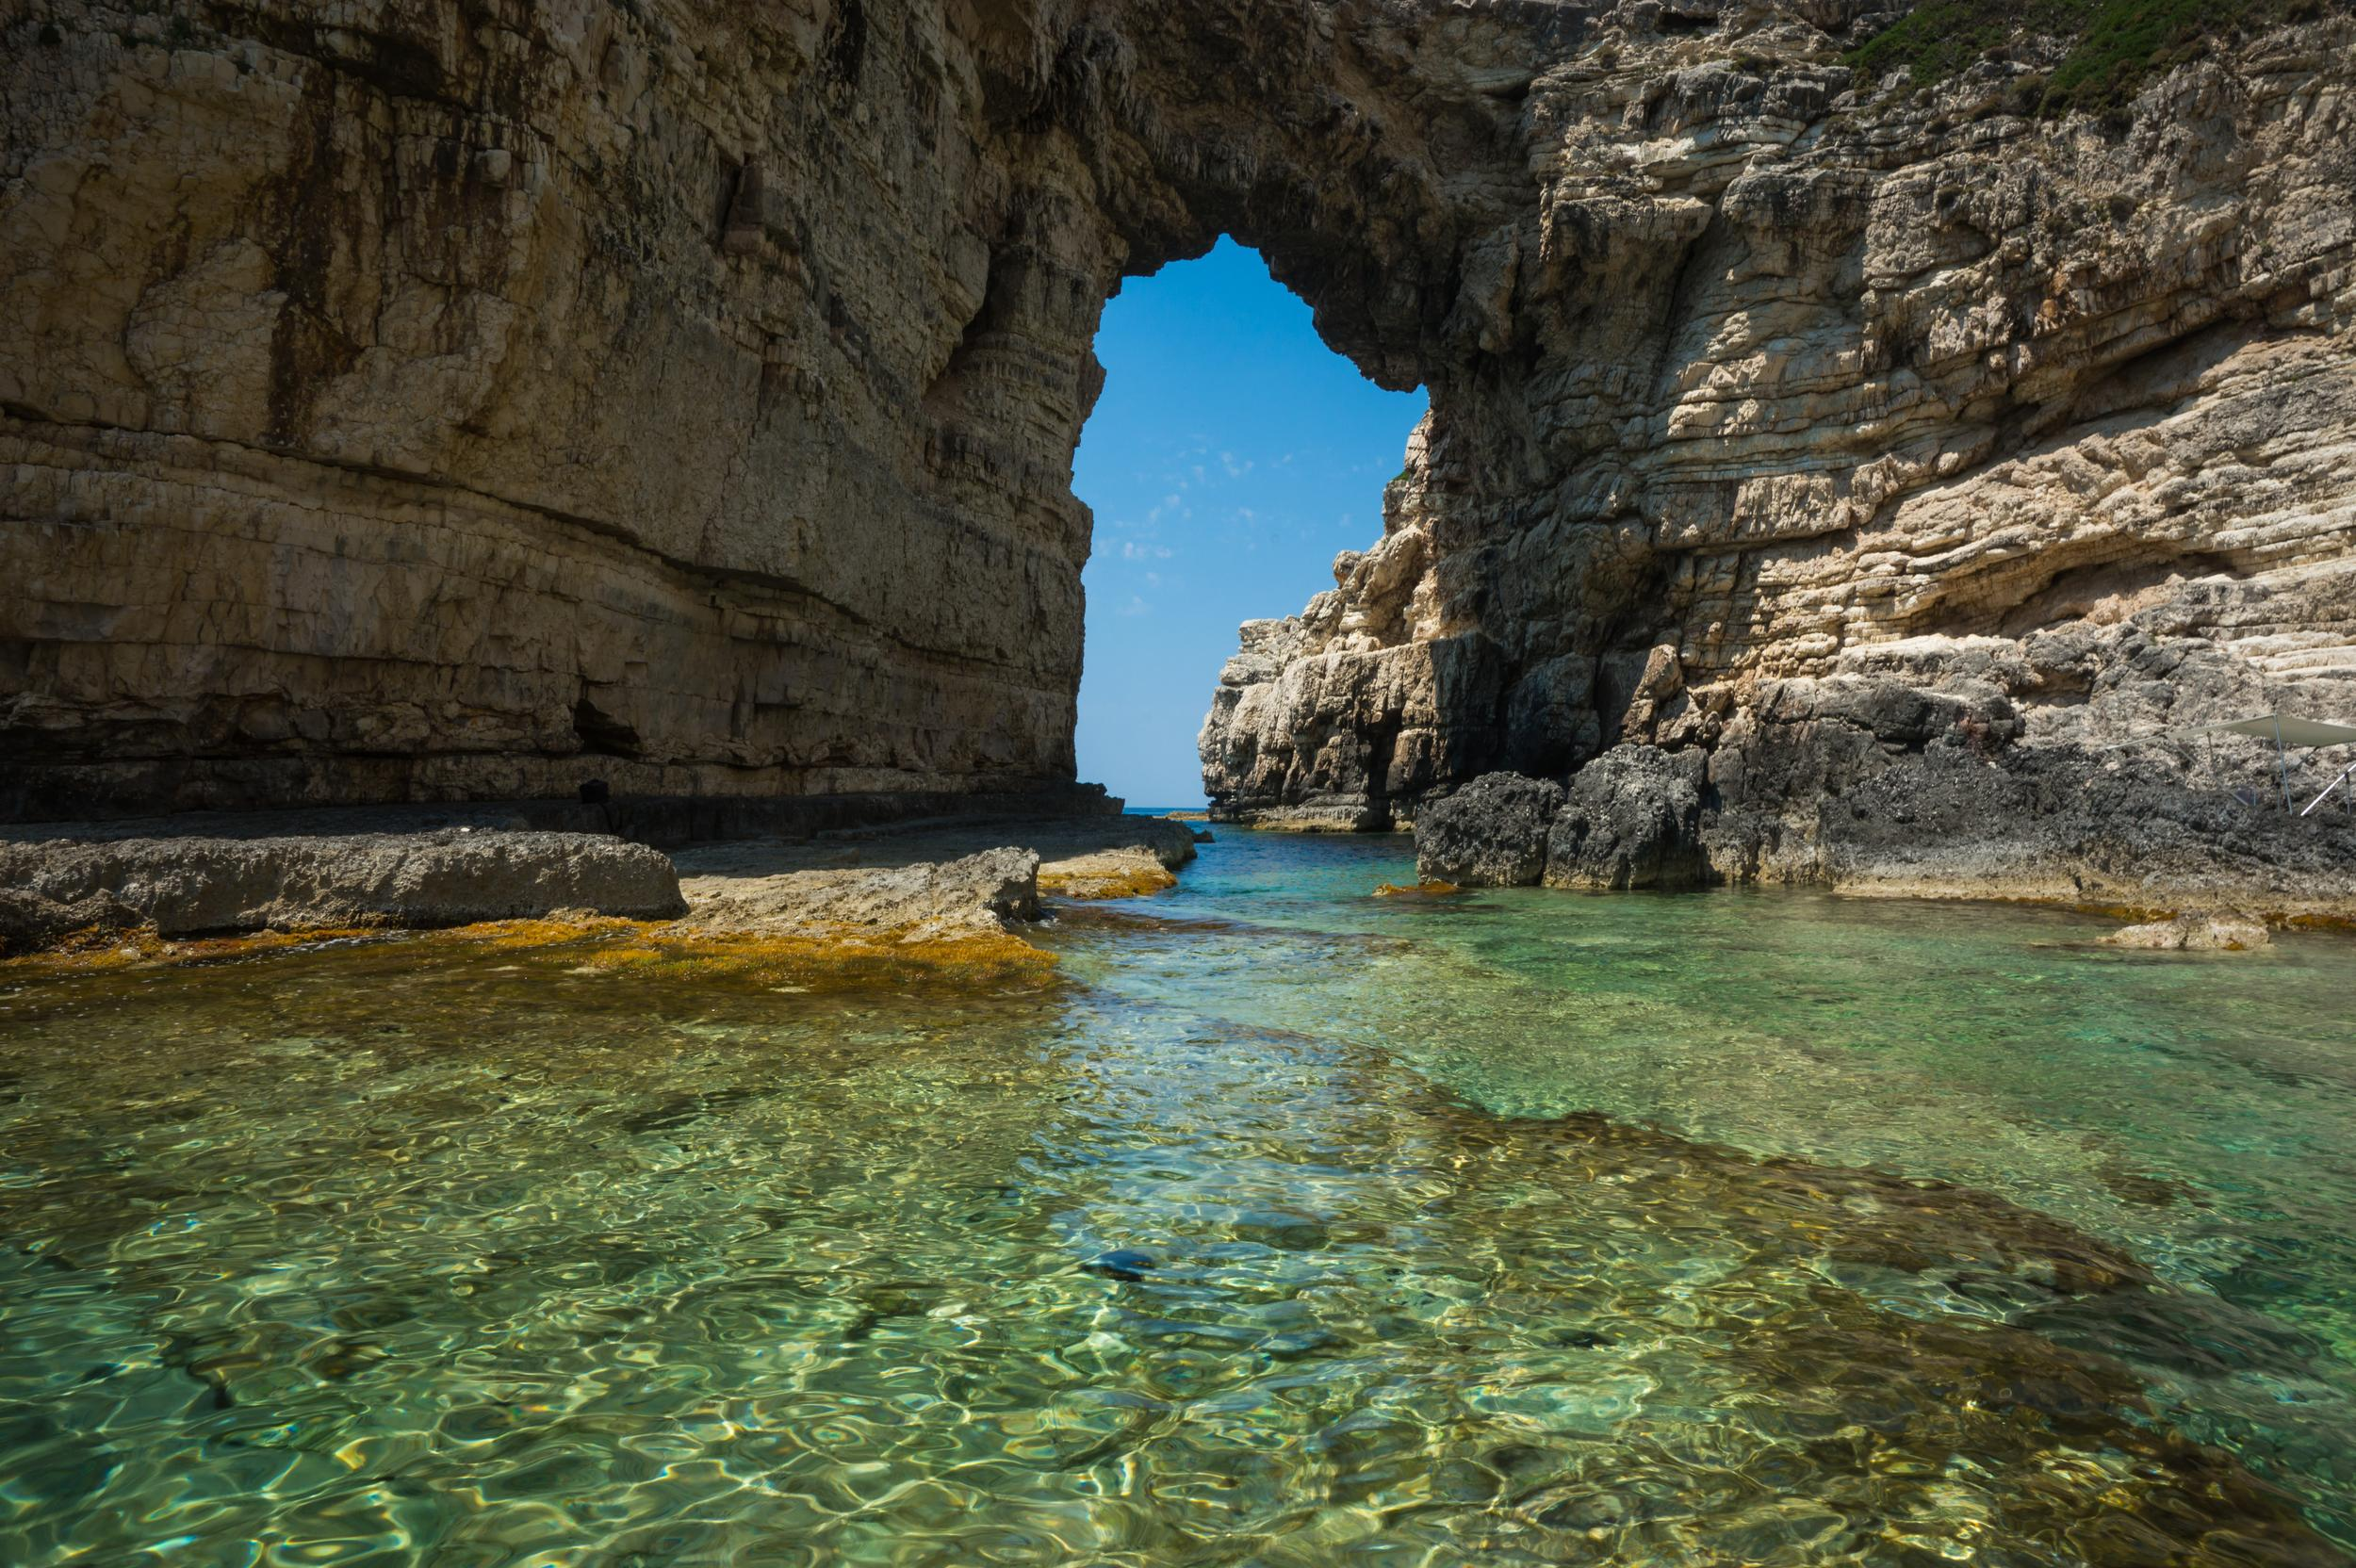 """<p>One of the Ionian's most idyllic islands, Paxi, offers fjord-shaped beaches, underwater caves and green hills for a peaceful holiday in Greece. According to legend, the island would be the southernmost tip of <a href=""""http://travel.aol.co.uk/guides/corfu/"""" target=""""_blank"""">Corfu</a> if Poseidon, the God of the Sea, had not broken it off with his trident. Paxi has three small seaside villages tucked away in pine and olive trees: Loggos, Lakka and Ozias. There are countless beaches offering a starting point for scuba divers to explore the underwater caves and shipwrecks, and Paxi's other must-dos include the Olive Museum and exploring the islets.</p>"""